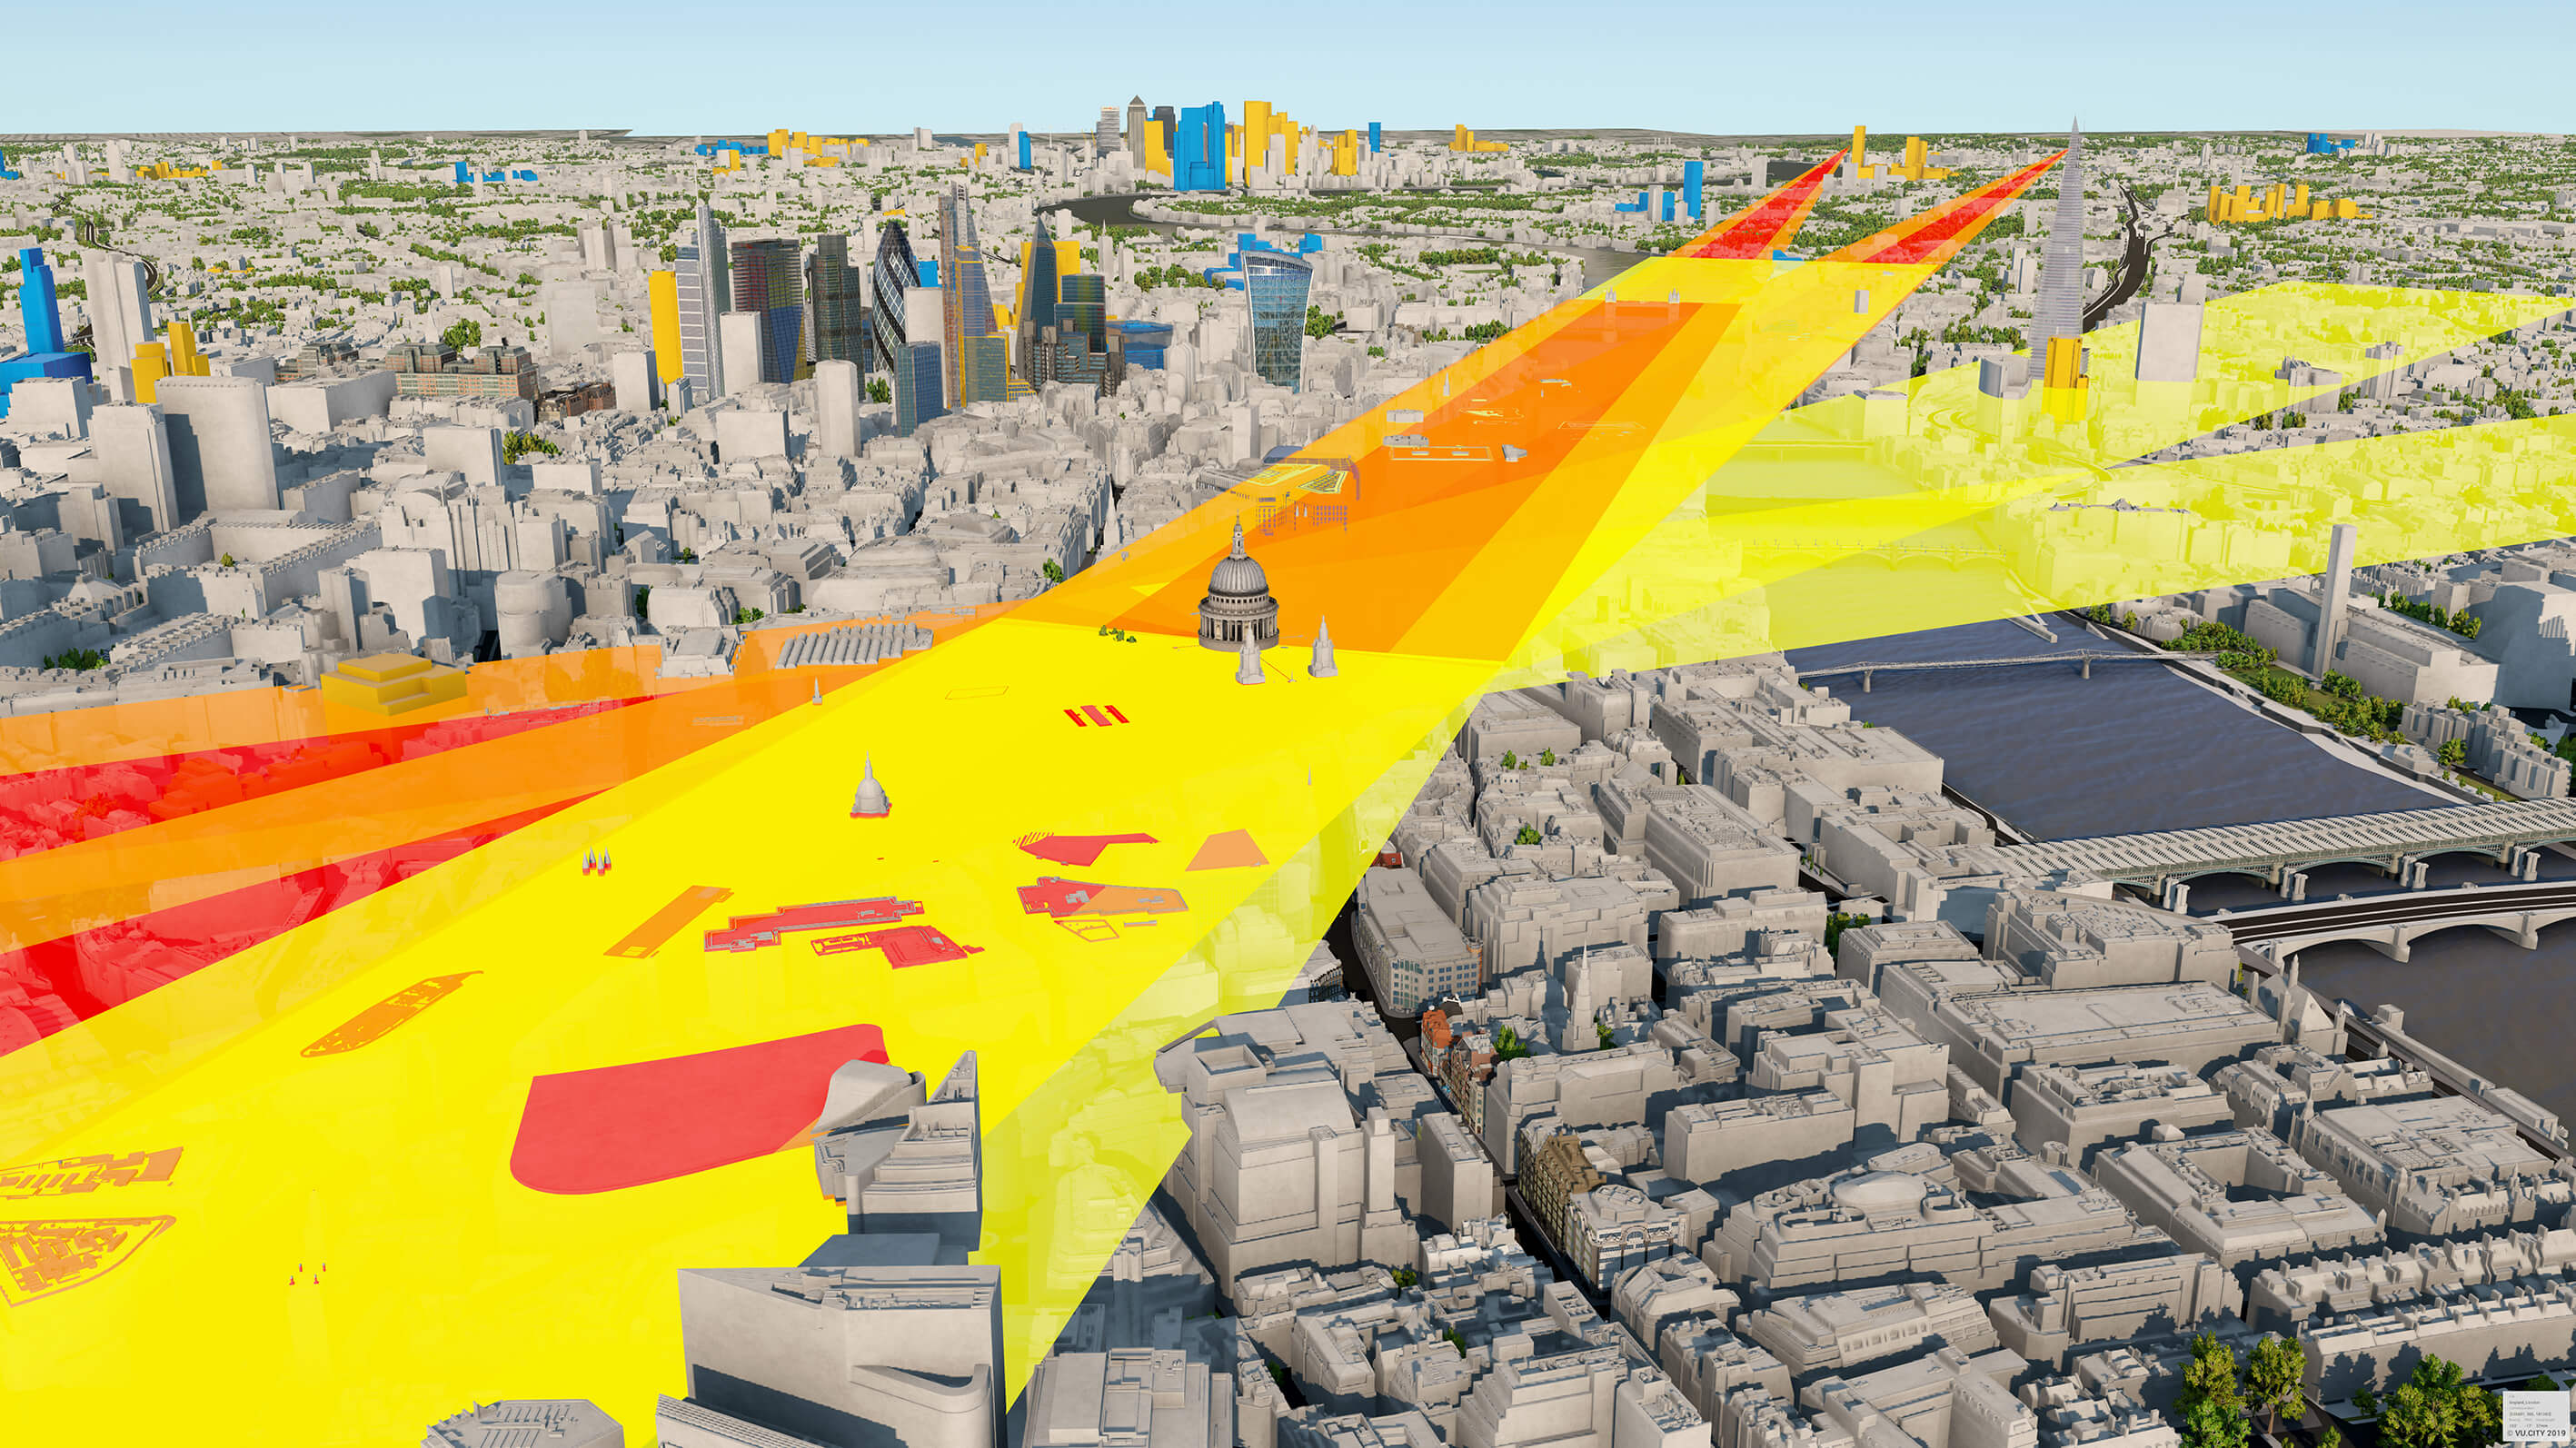 A CGI view of the london skyline with sight lines in yellow, orange and red